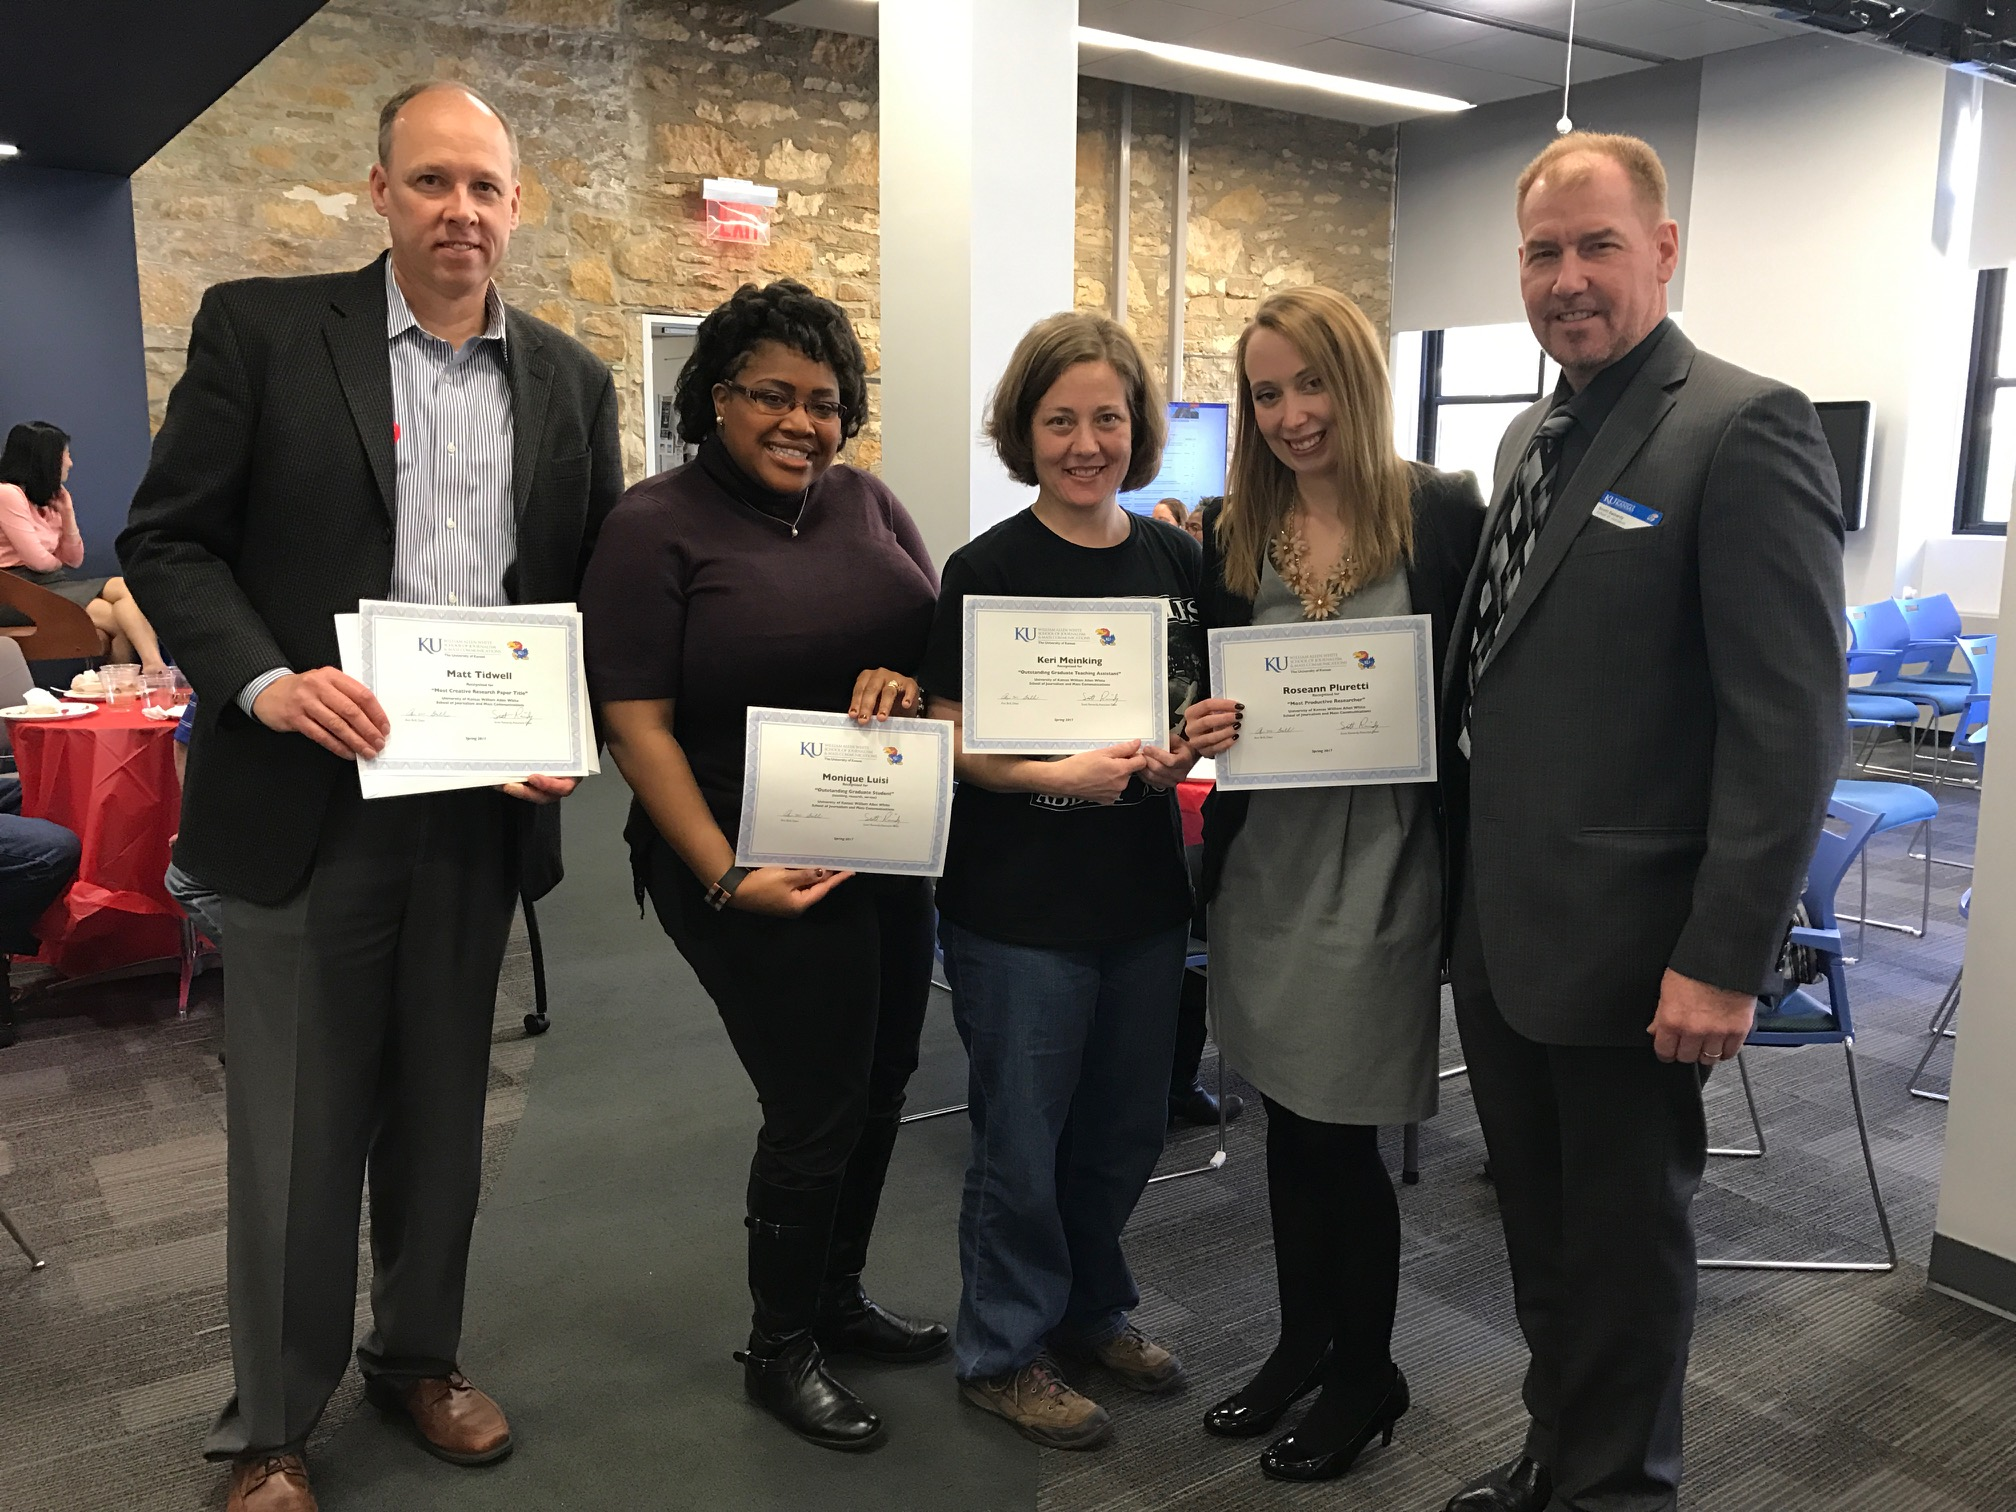 J-School graduate students were recognized April 3-7 during Graduate Student Appreciation Week, and the following students won awards: (from left)  Matt Tidwell, Monique Luisi, Keri Meinking  and  Roseann Pluretti  with Associate Dean  Scott Reinardy . Not pictured:  Husain Ebrahim